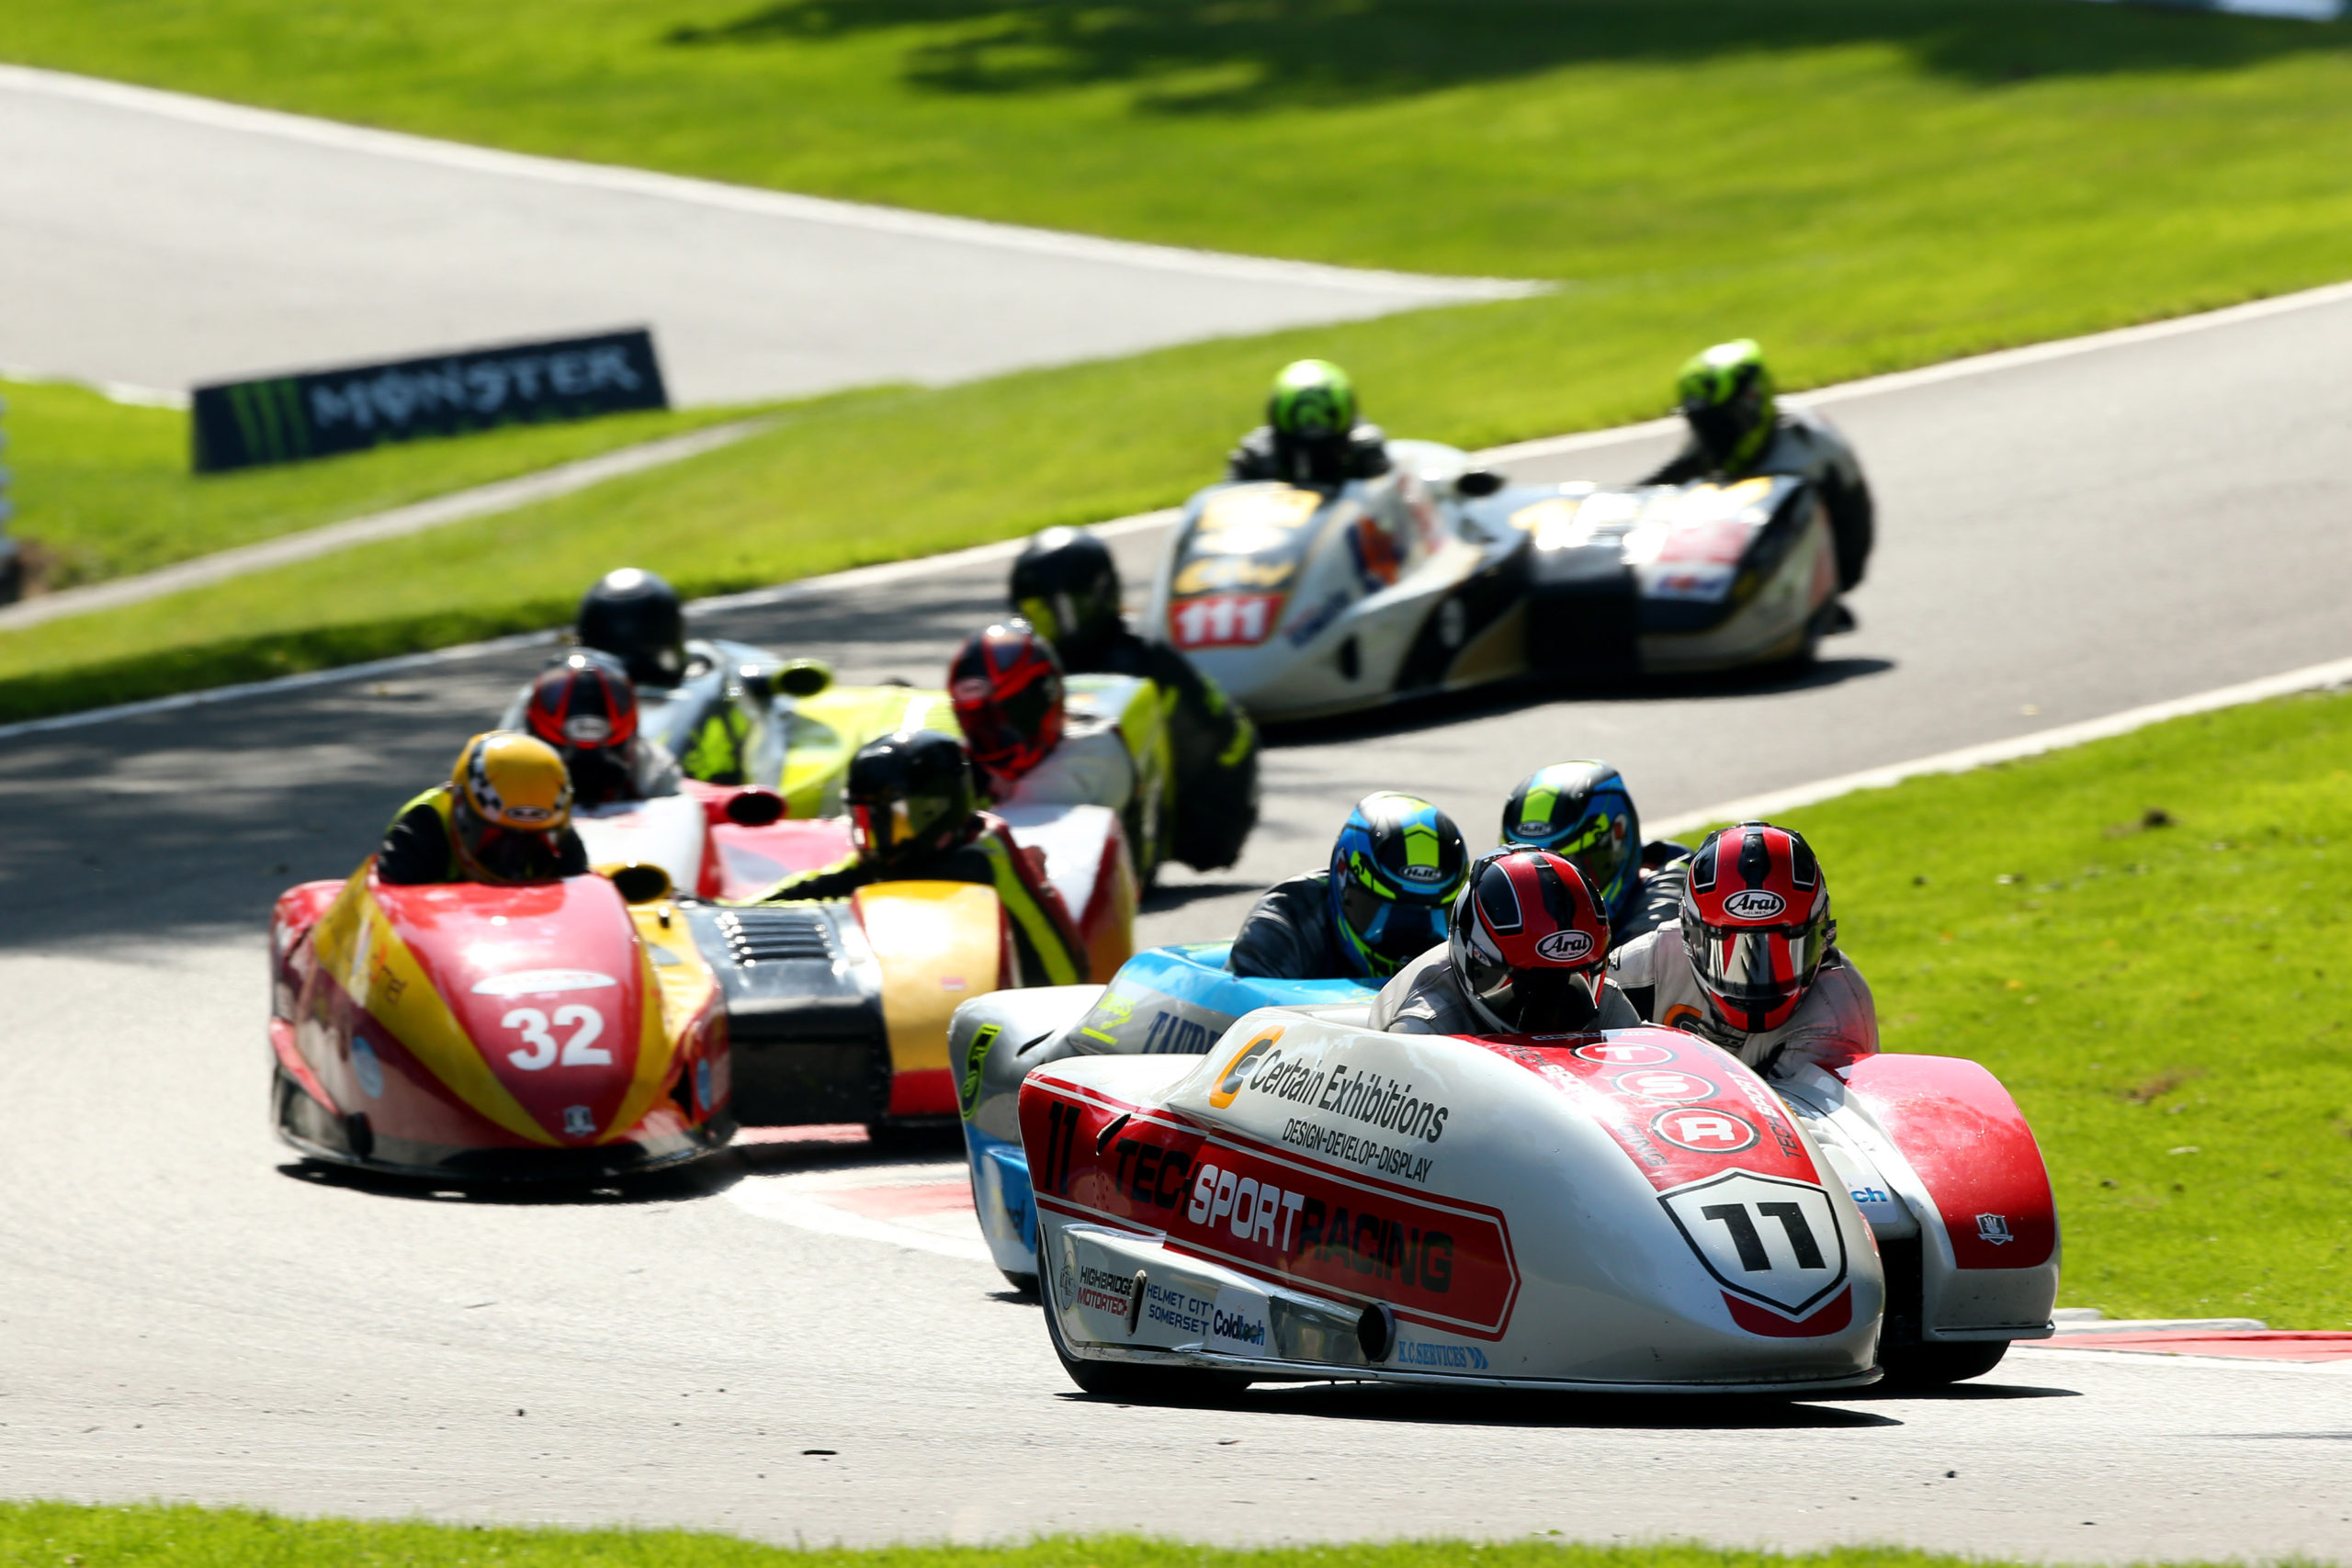 Sidecar racing at Cadwell Park